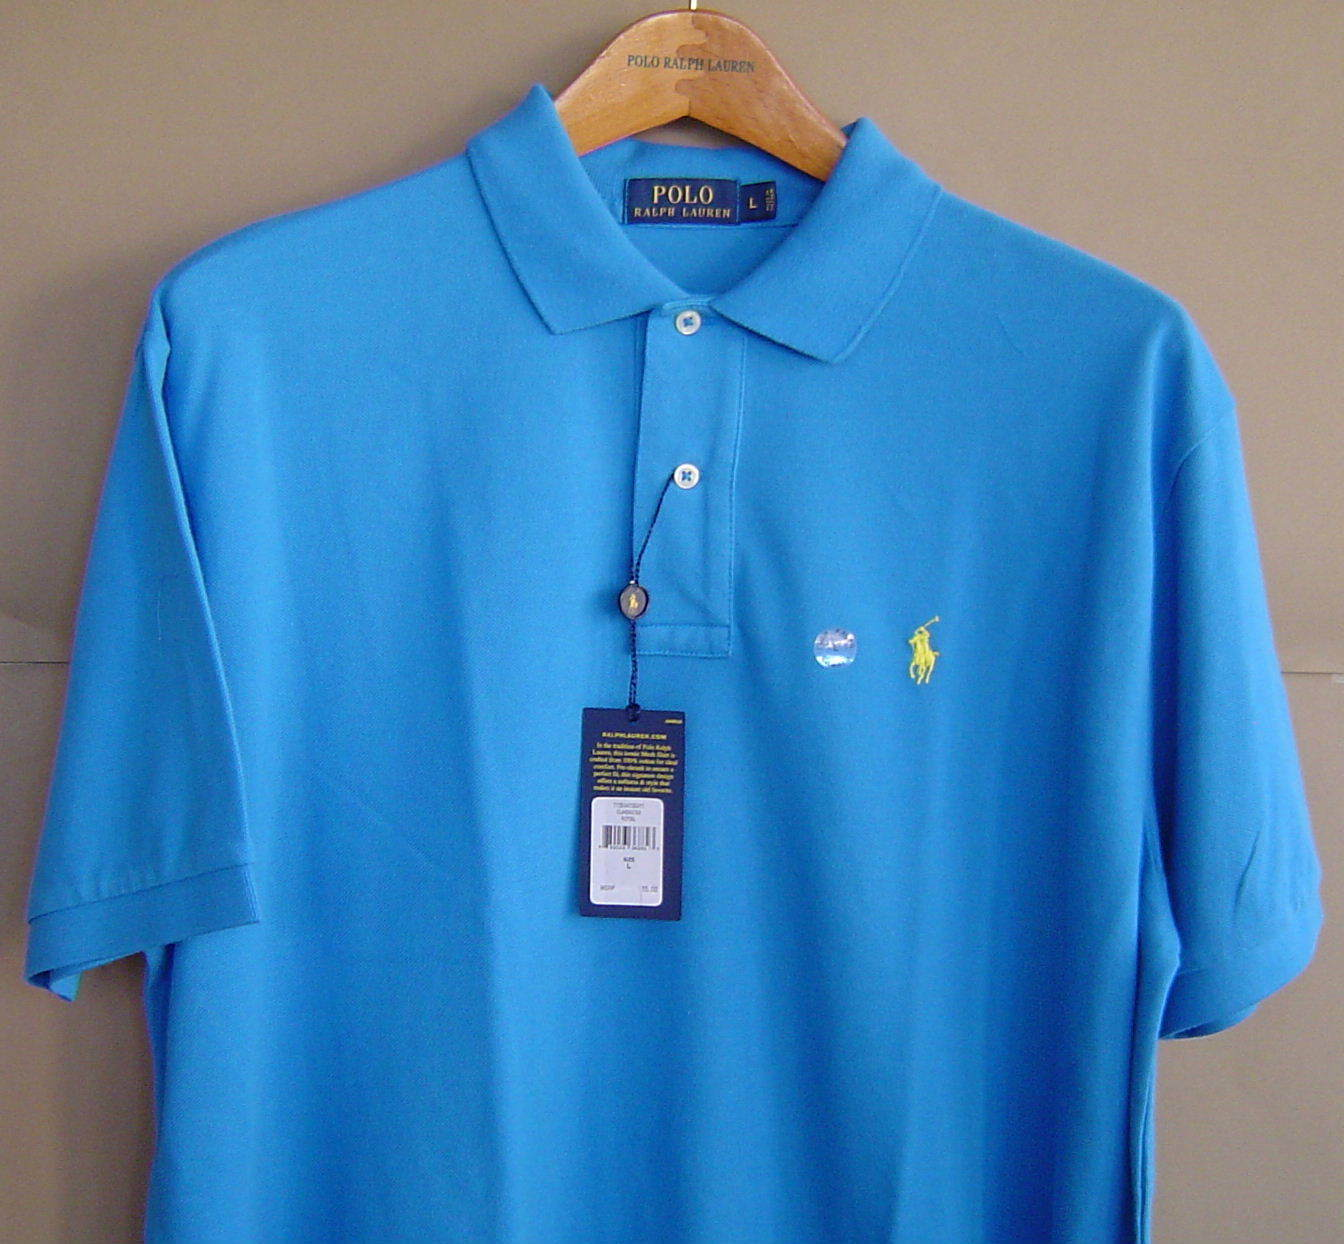 NWT  POLO RALPH LAUREN Mens L CLASSIC FIT MESH SHIRT Spa Royal bluee Cotton